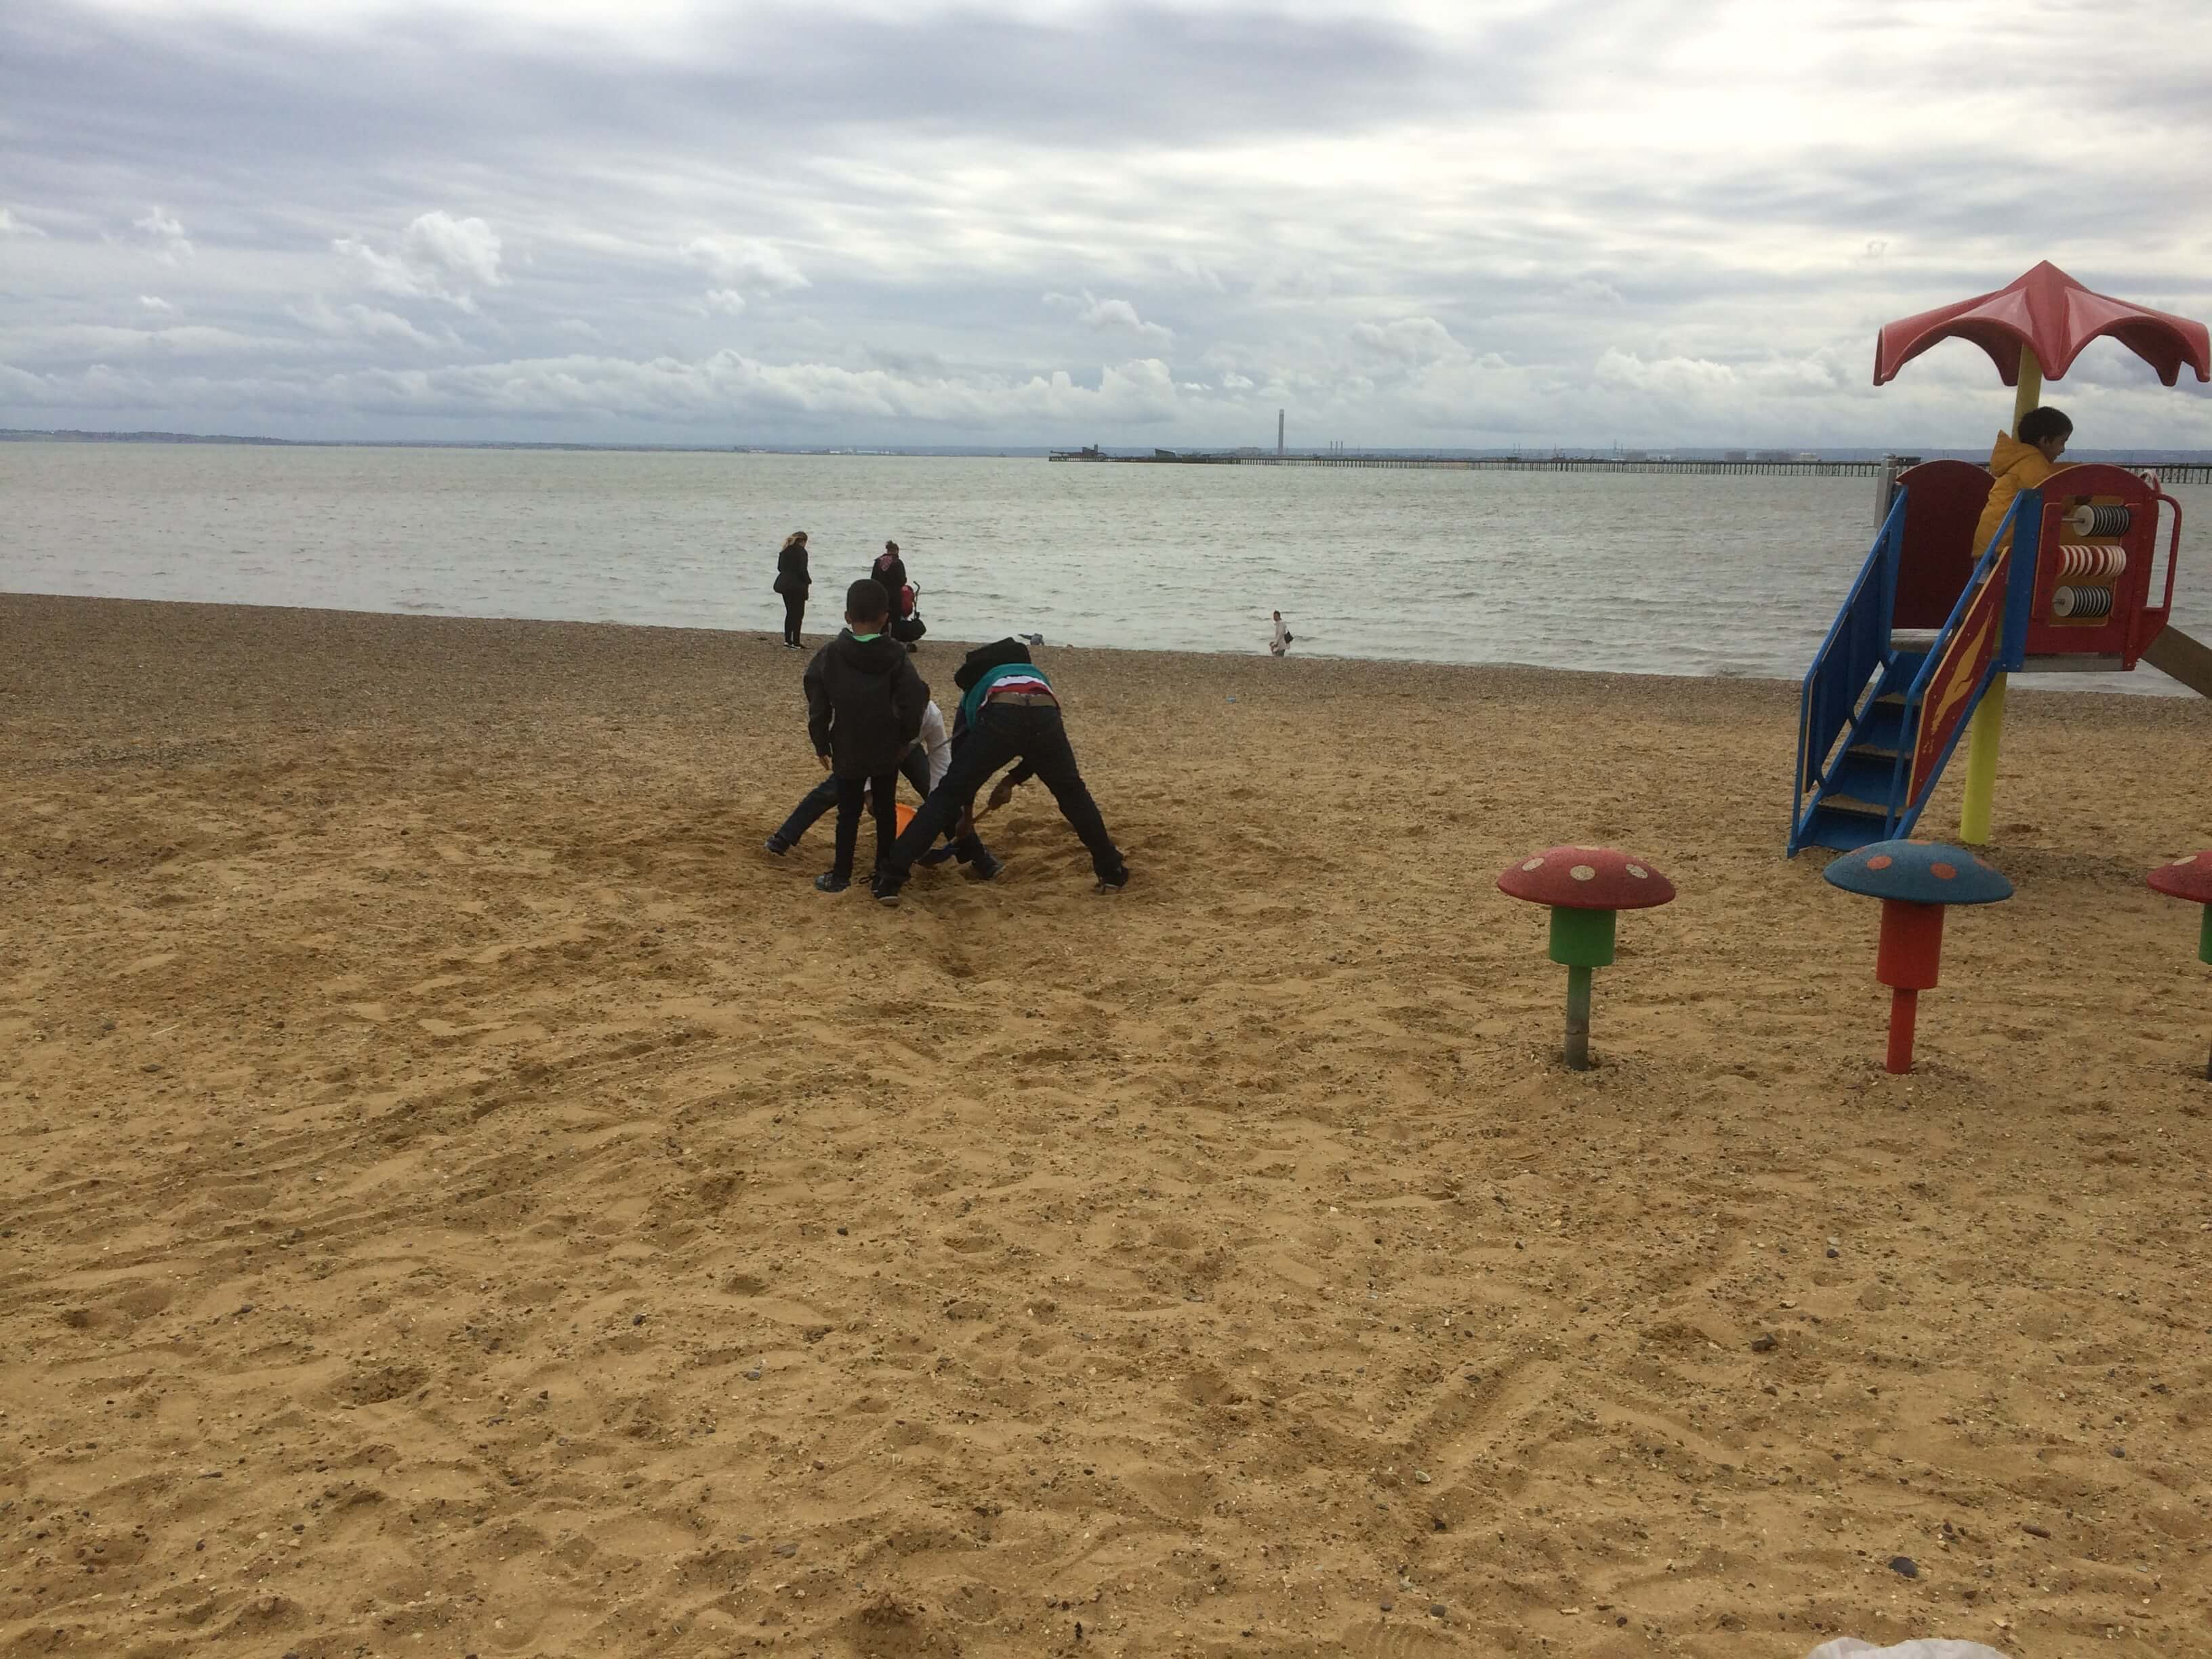 Children playing on the beach at Southend on Sea